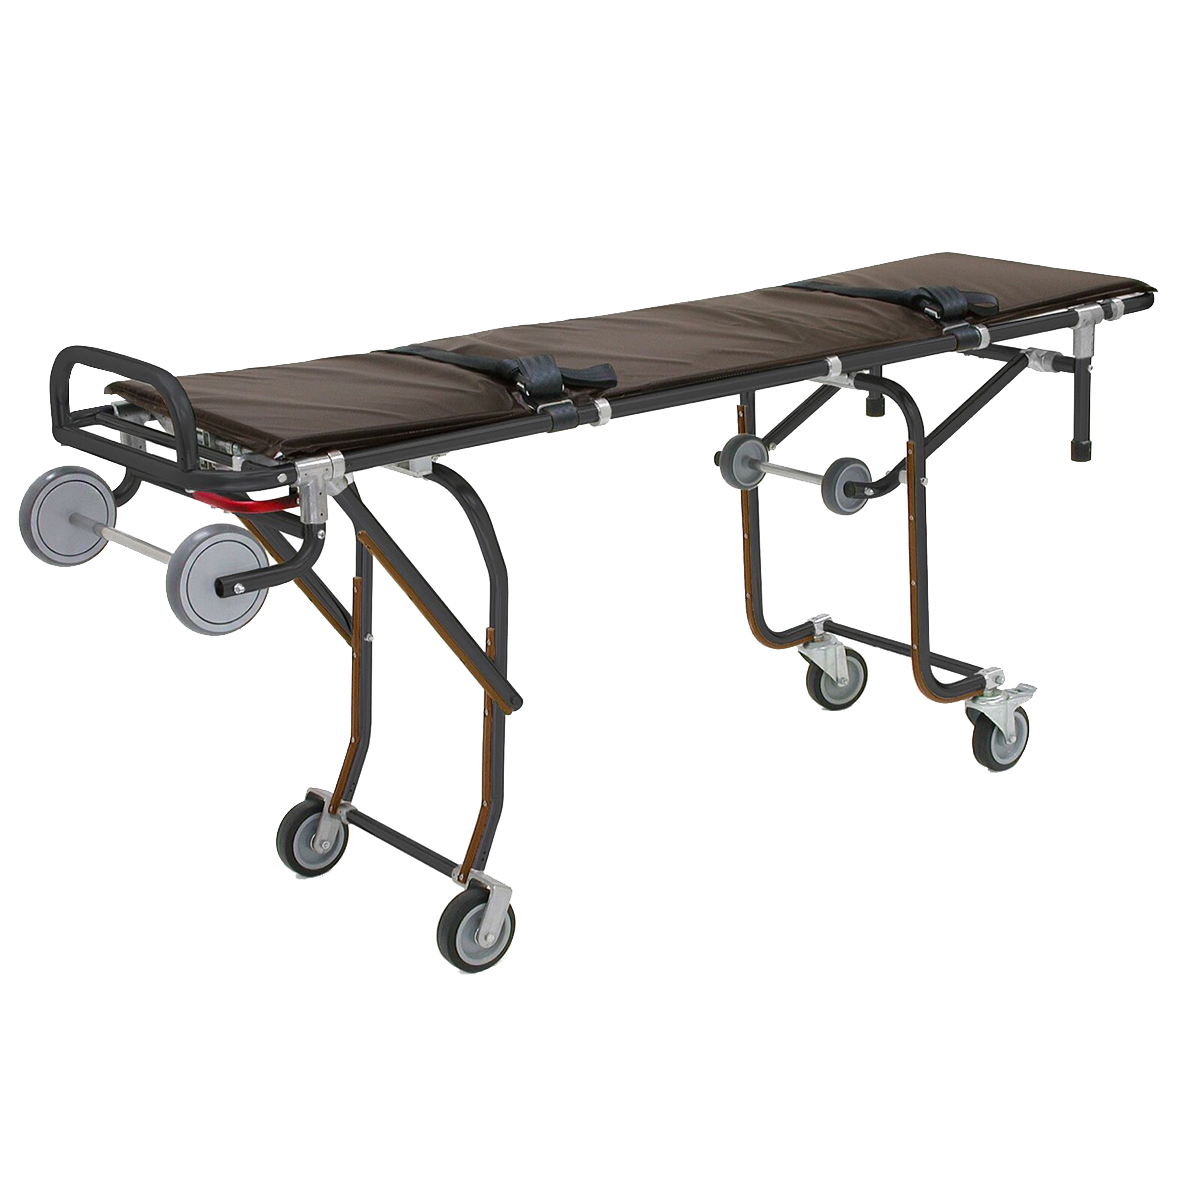 Mortuary stretcher